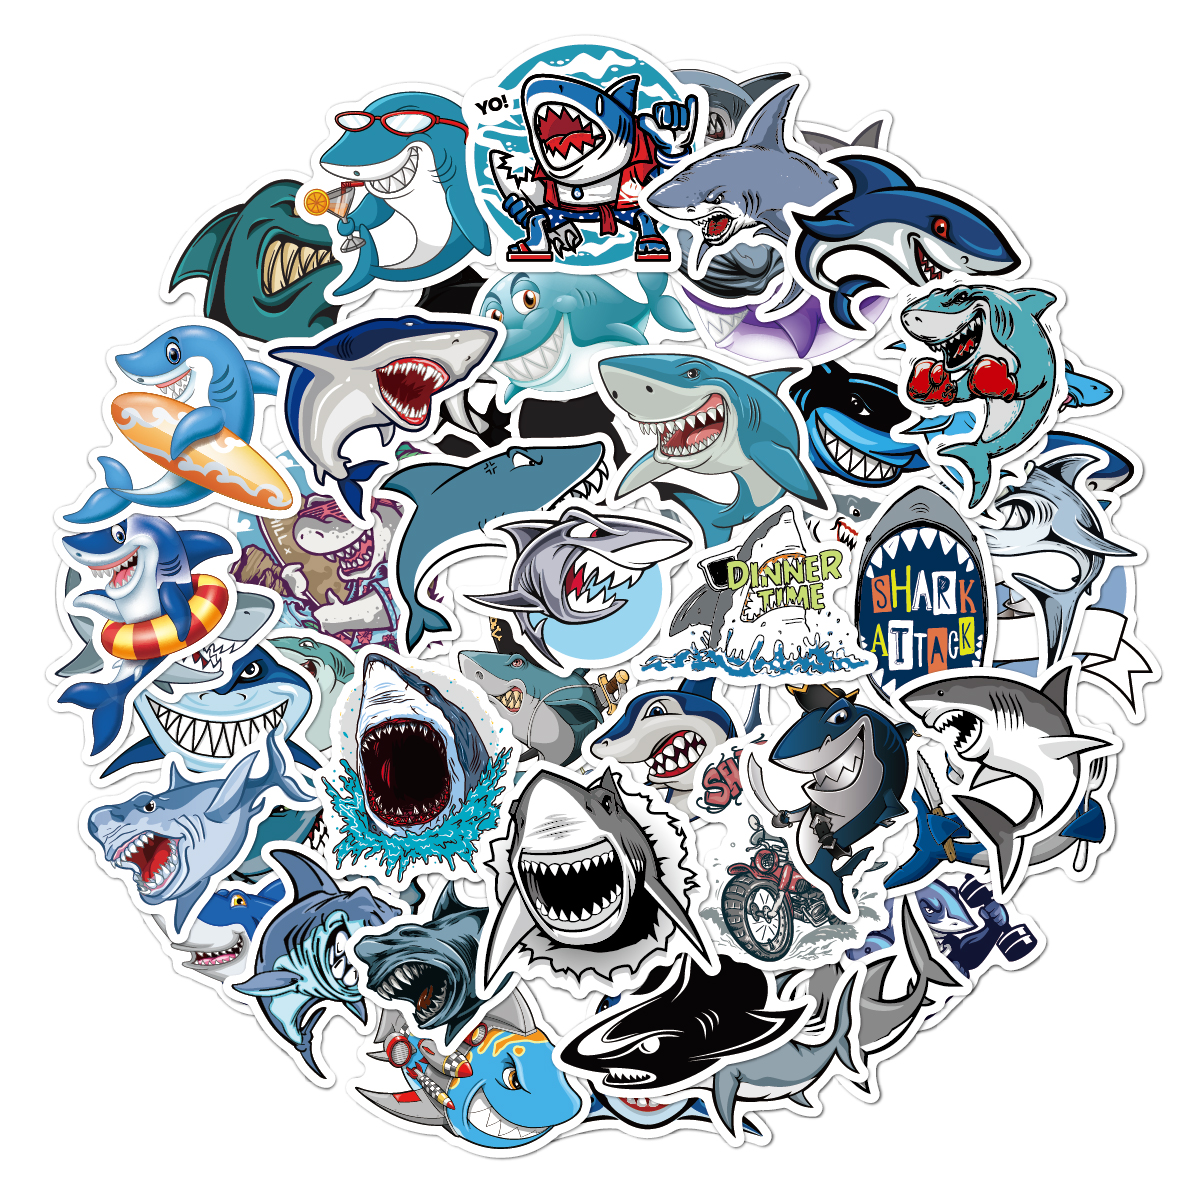 50pcs/Pack Kids Cute Animal Shark Funny Stickers Waterproof Skateboard Suitcase Phone Luggage Laptop Stickers Classic Toys